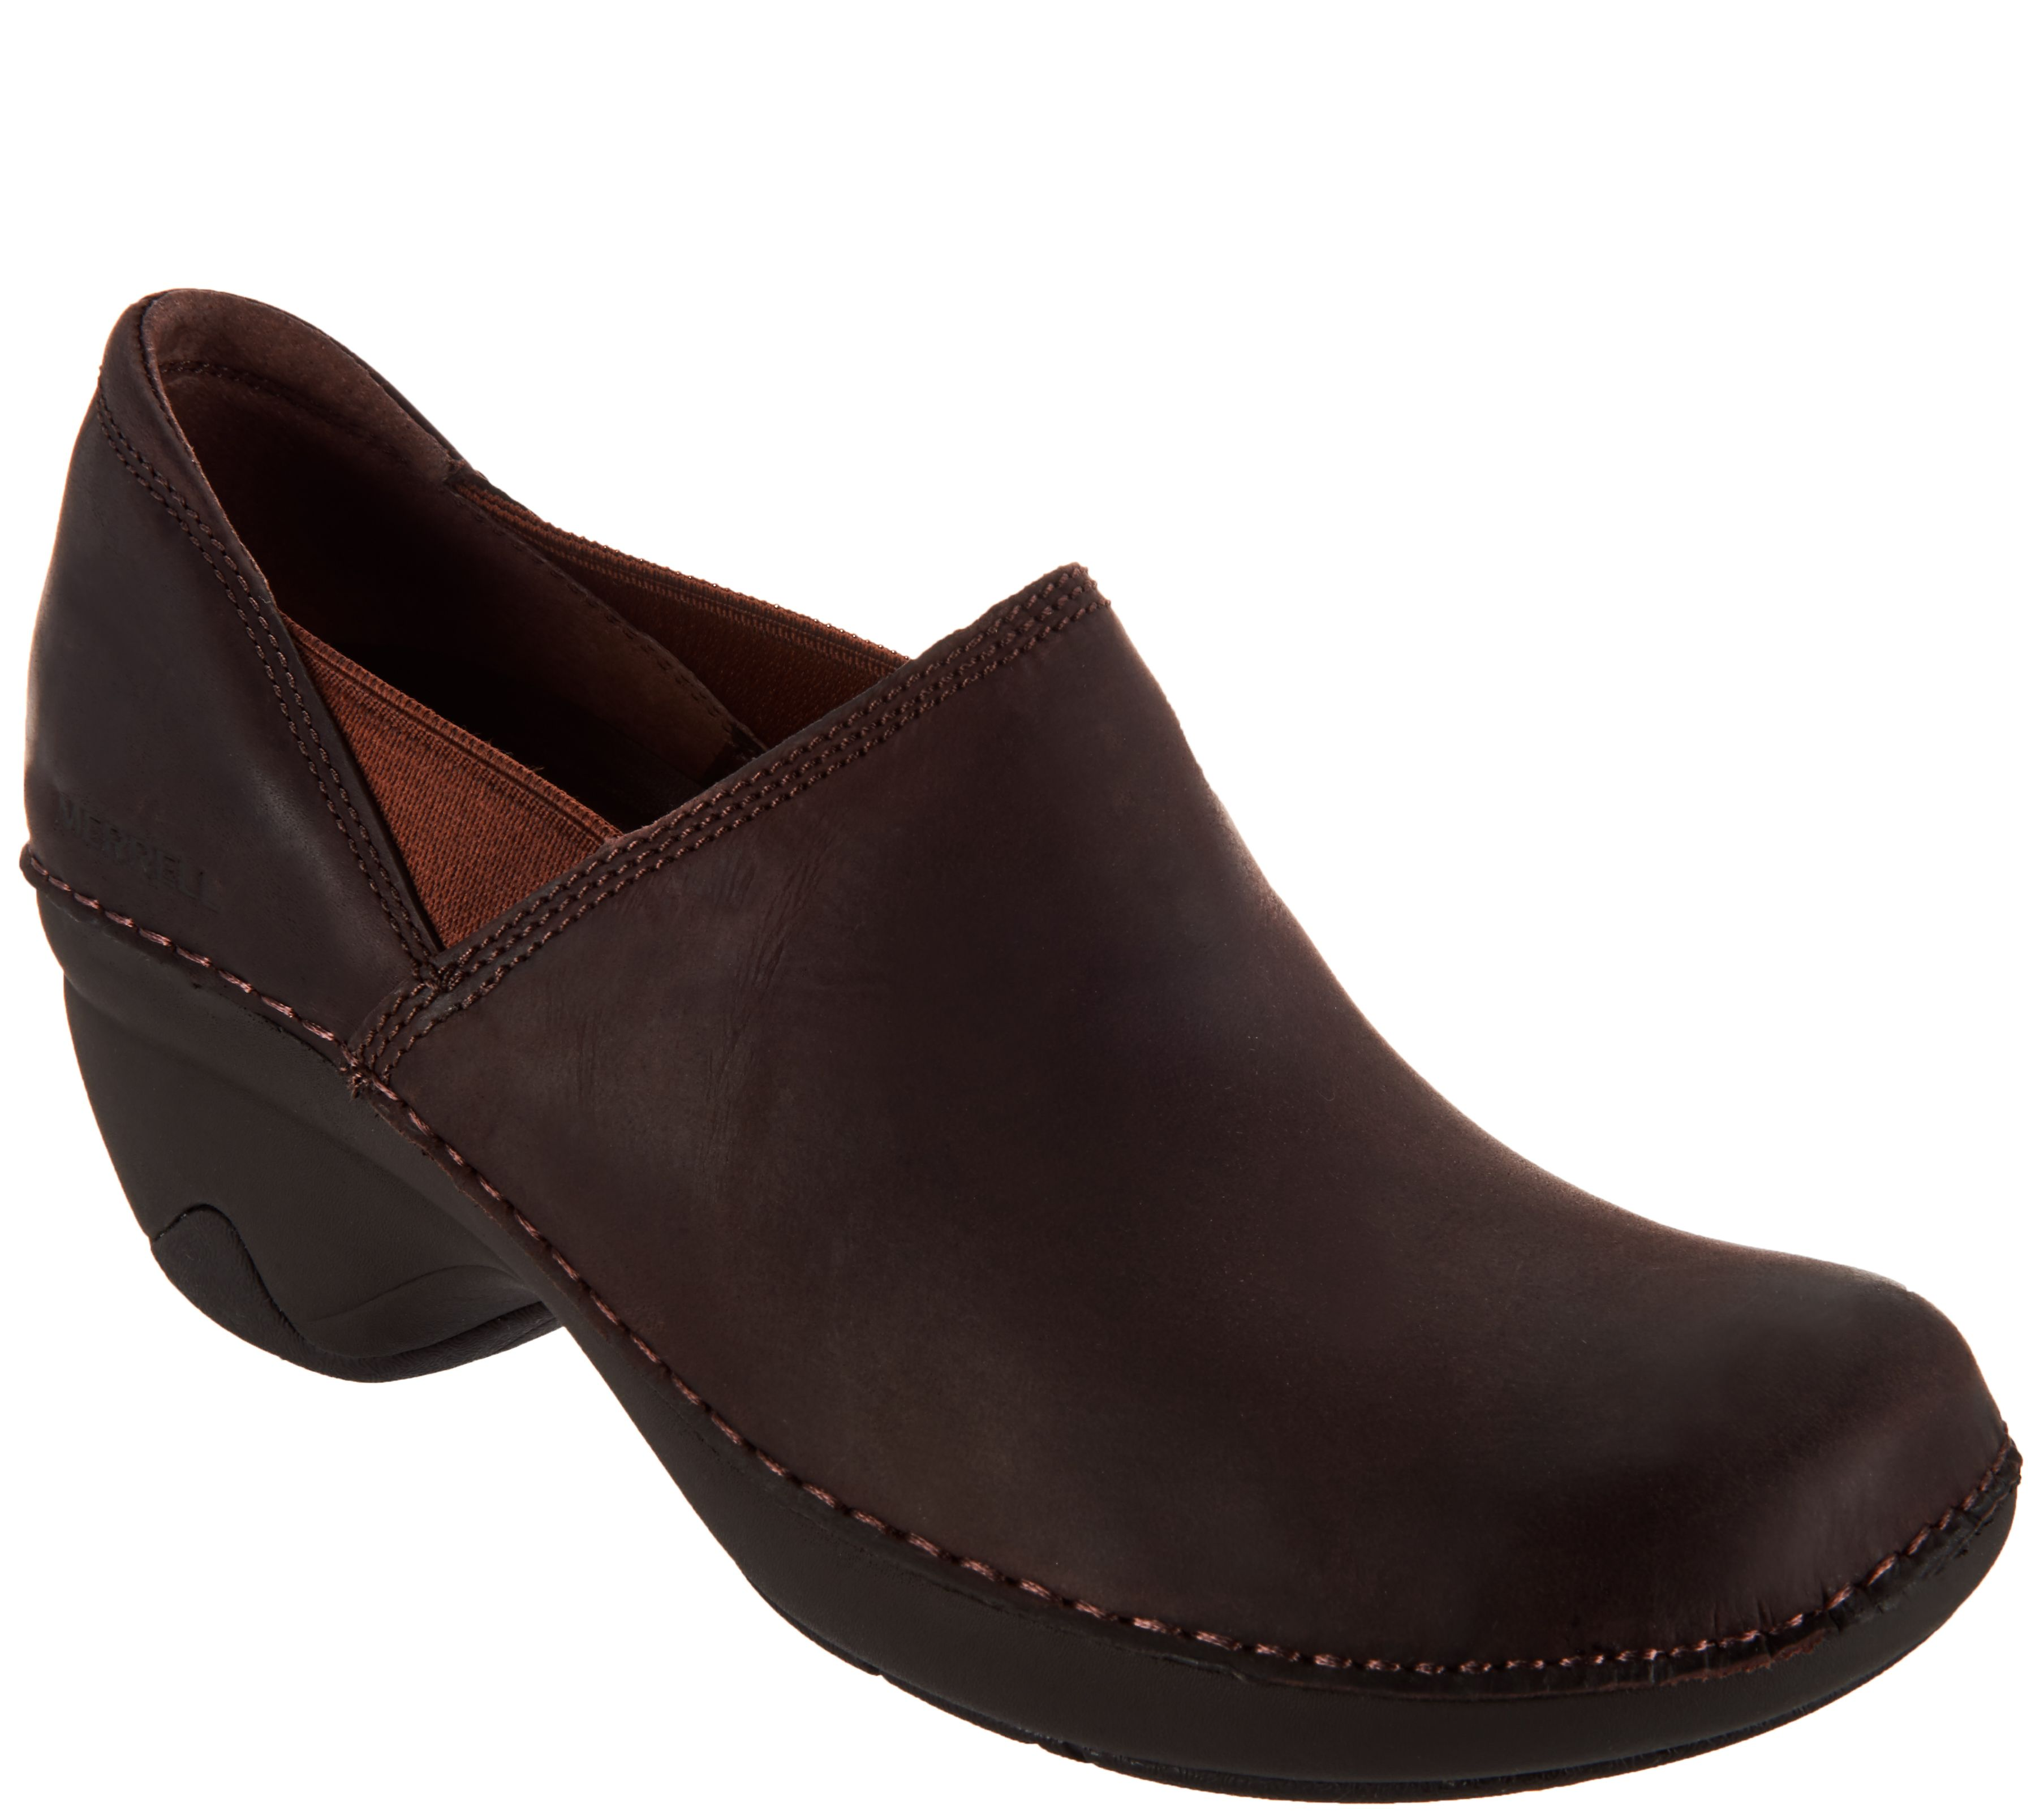 7c9c550dd09 Merrell Water Resistant Leather Slip-On Shoes - Emma Leather - Page 1 —  QVC.com